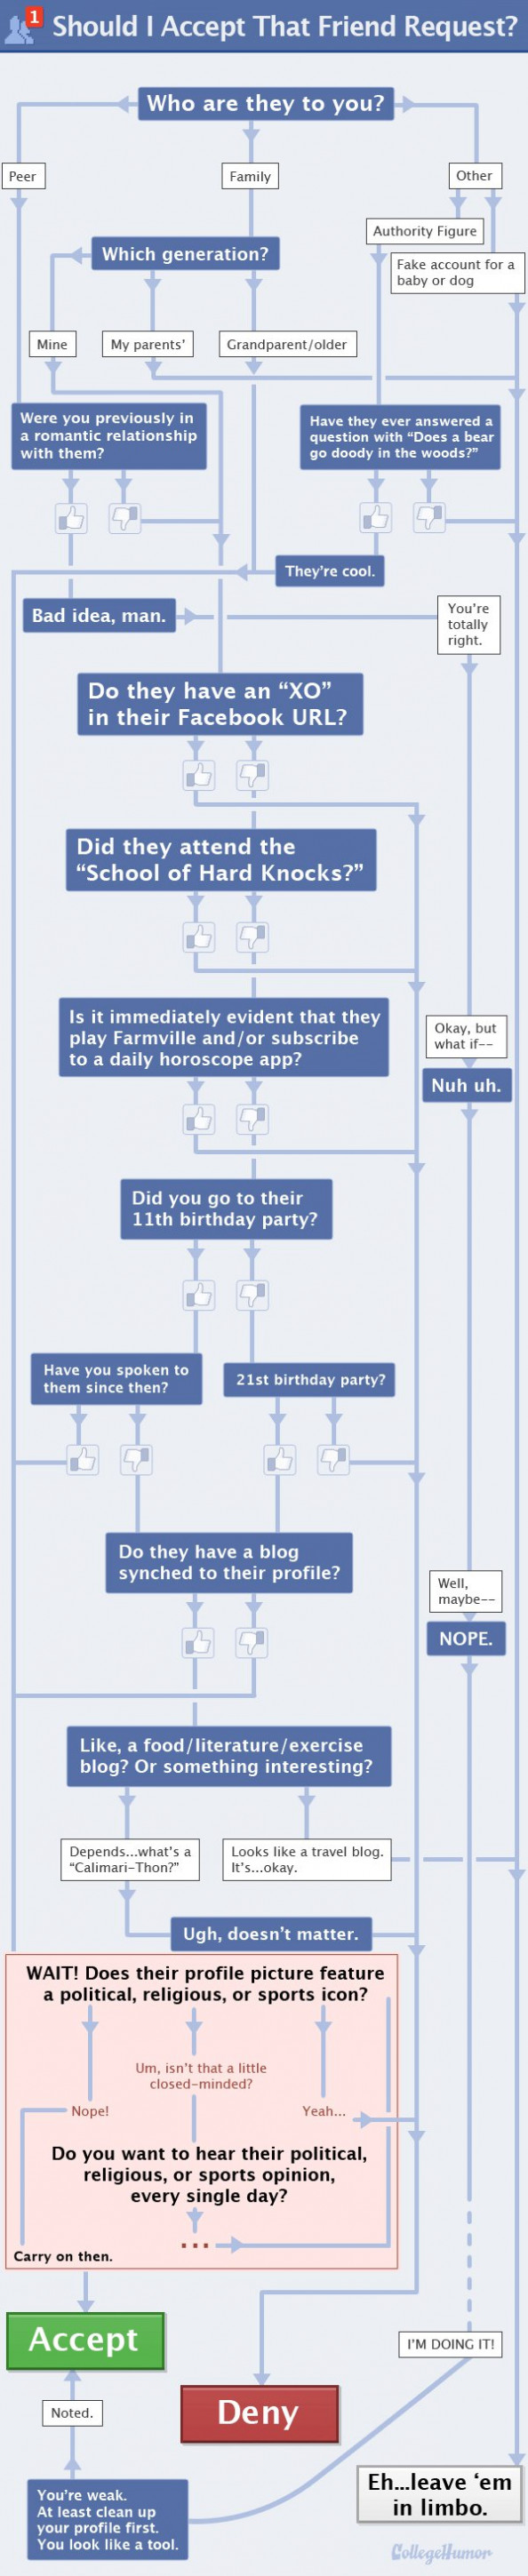 Should You Accept That Friend Request? Infographic